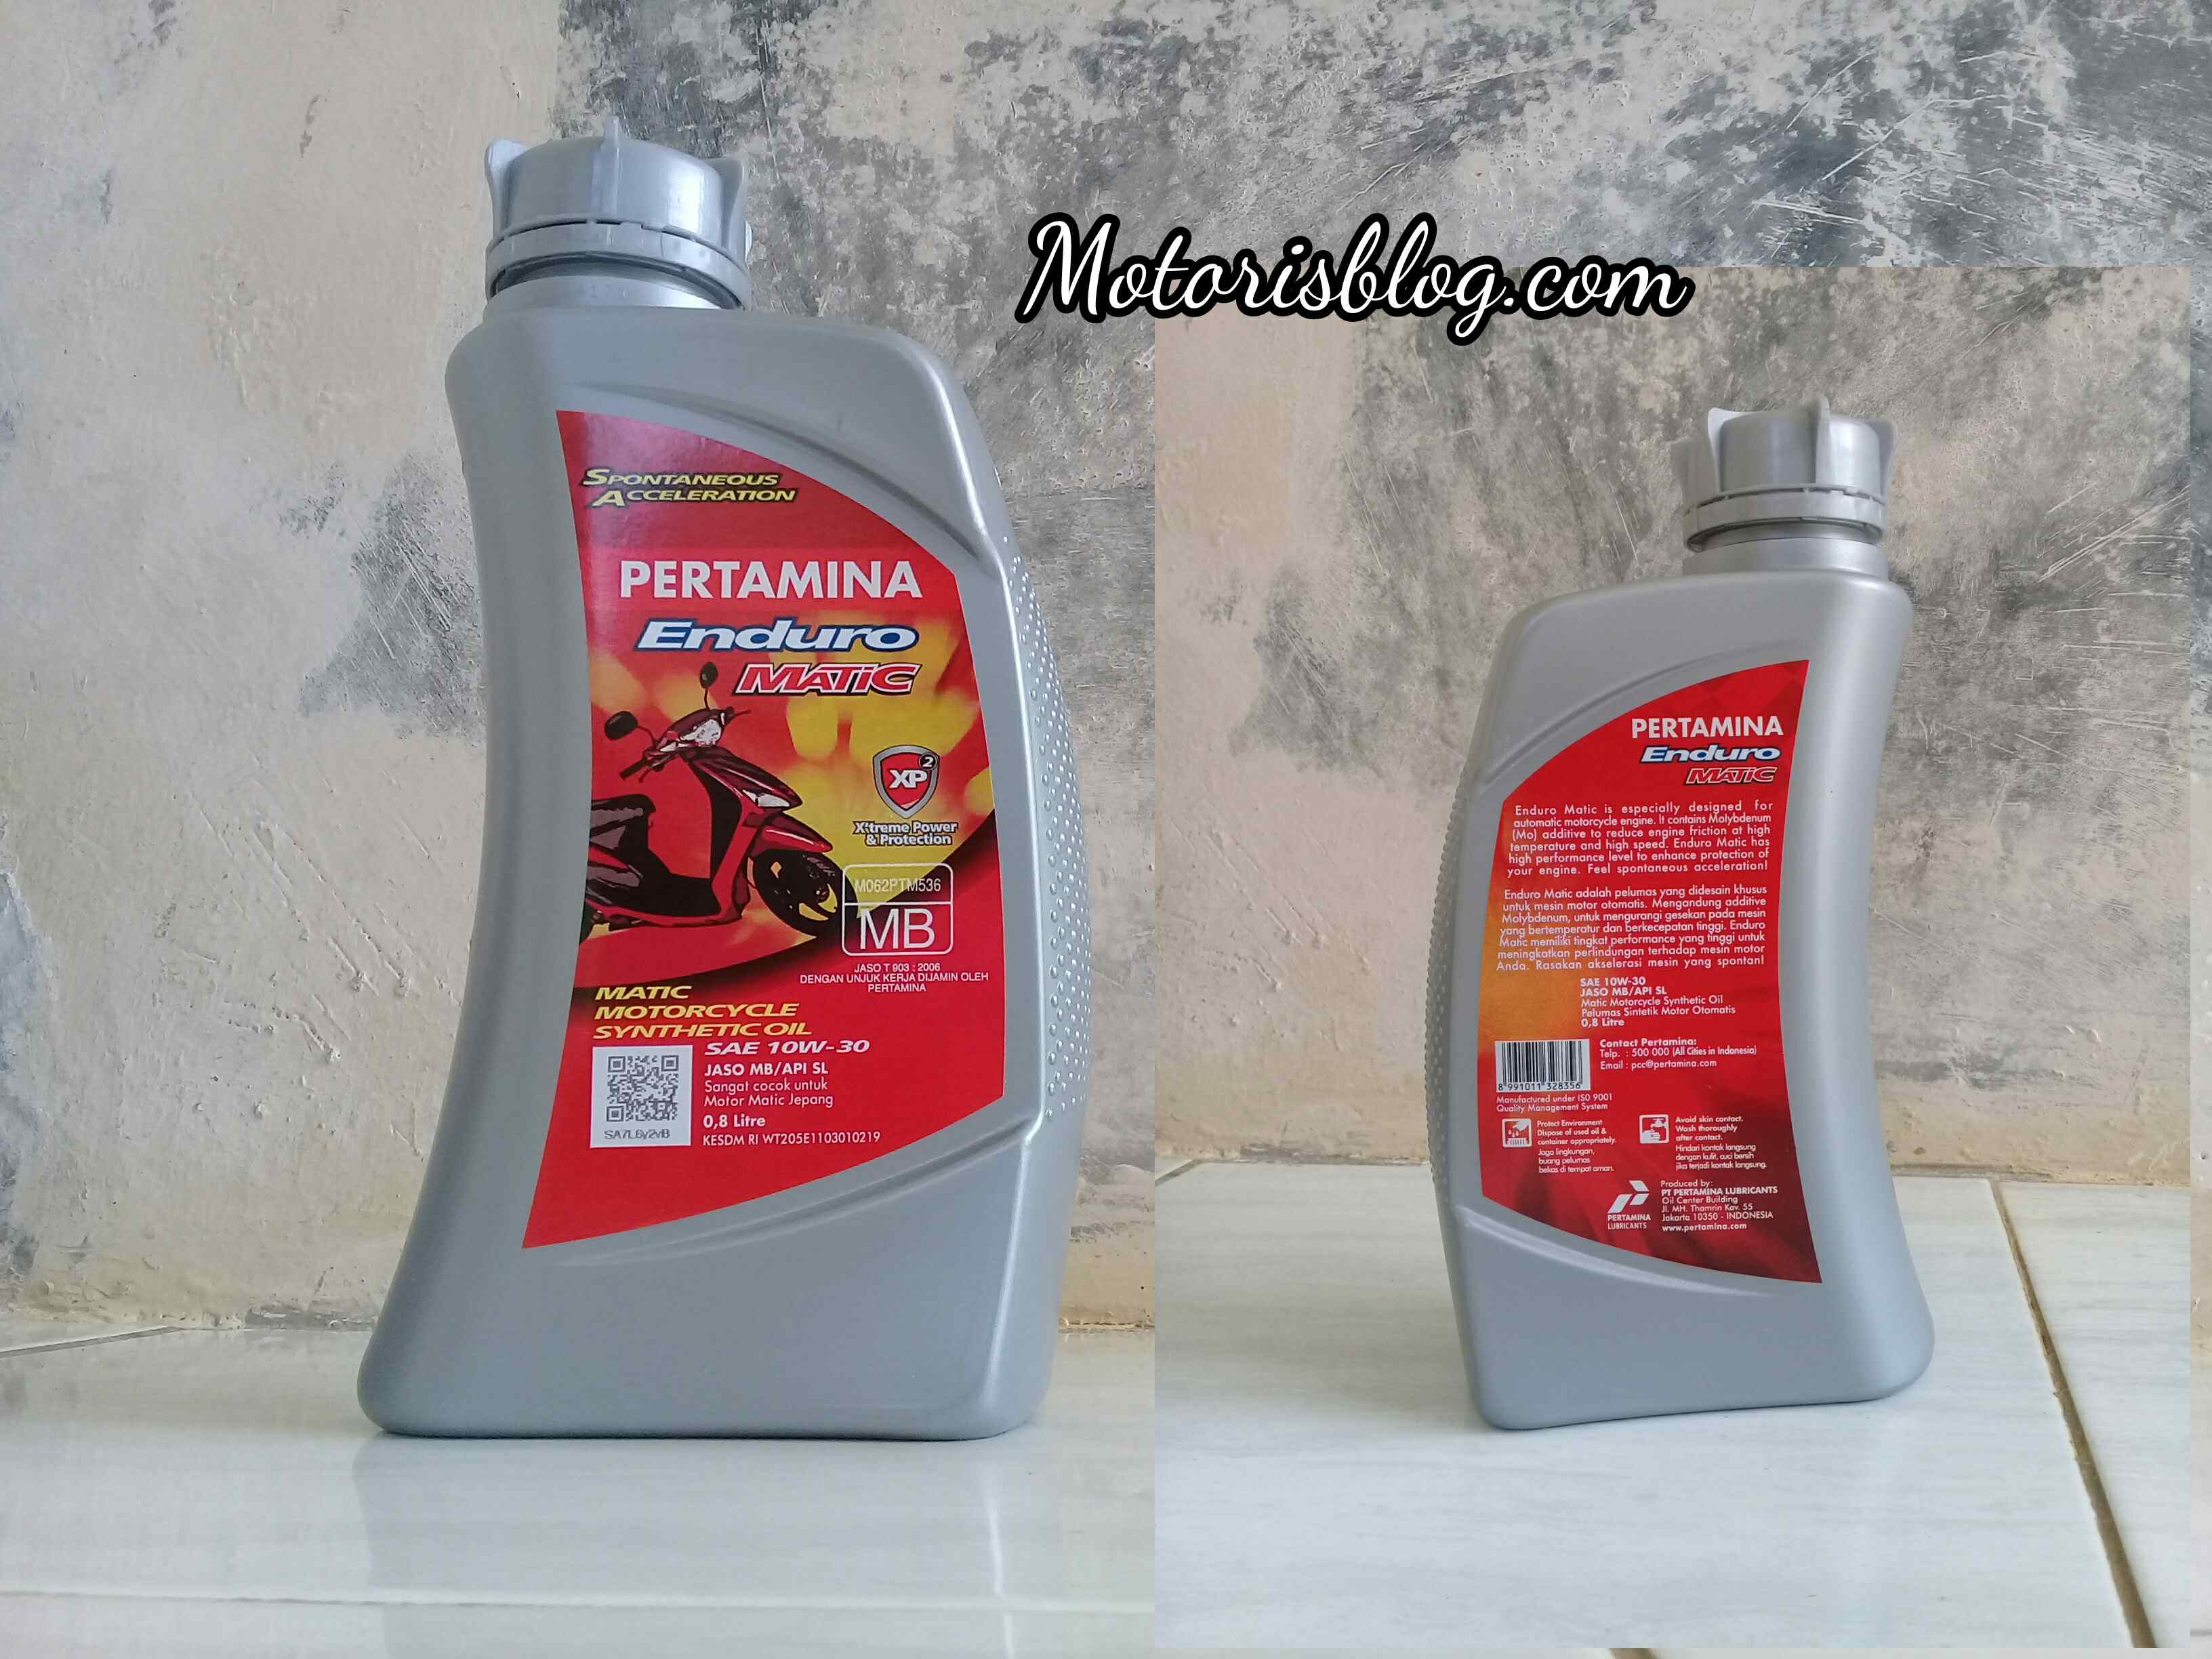 Pertamina Enduro Matic